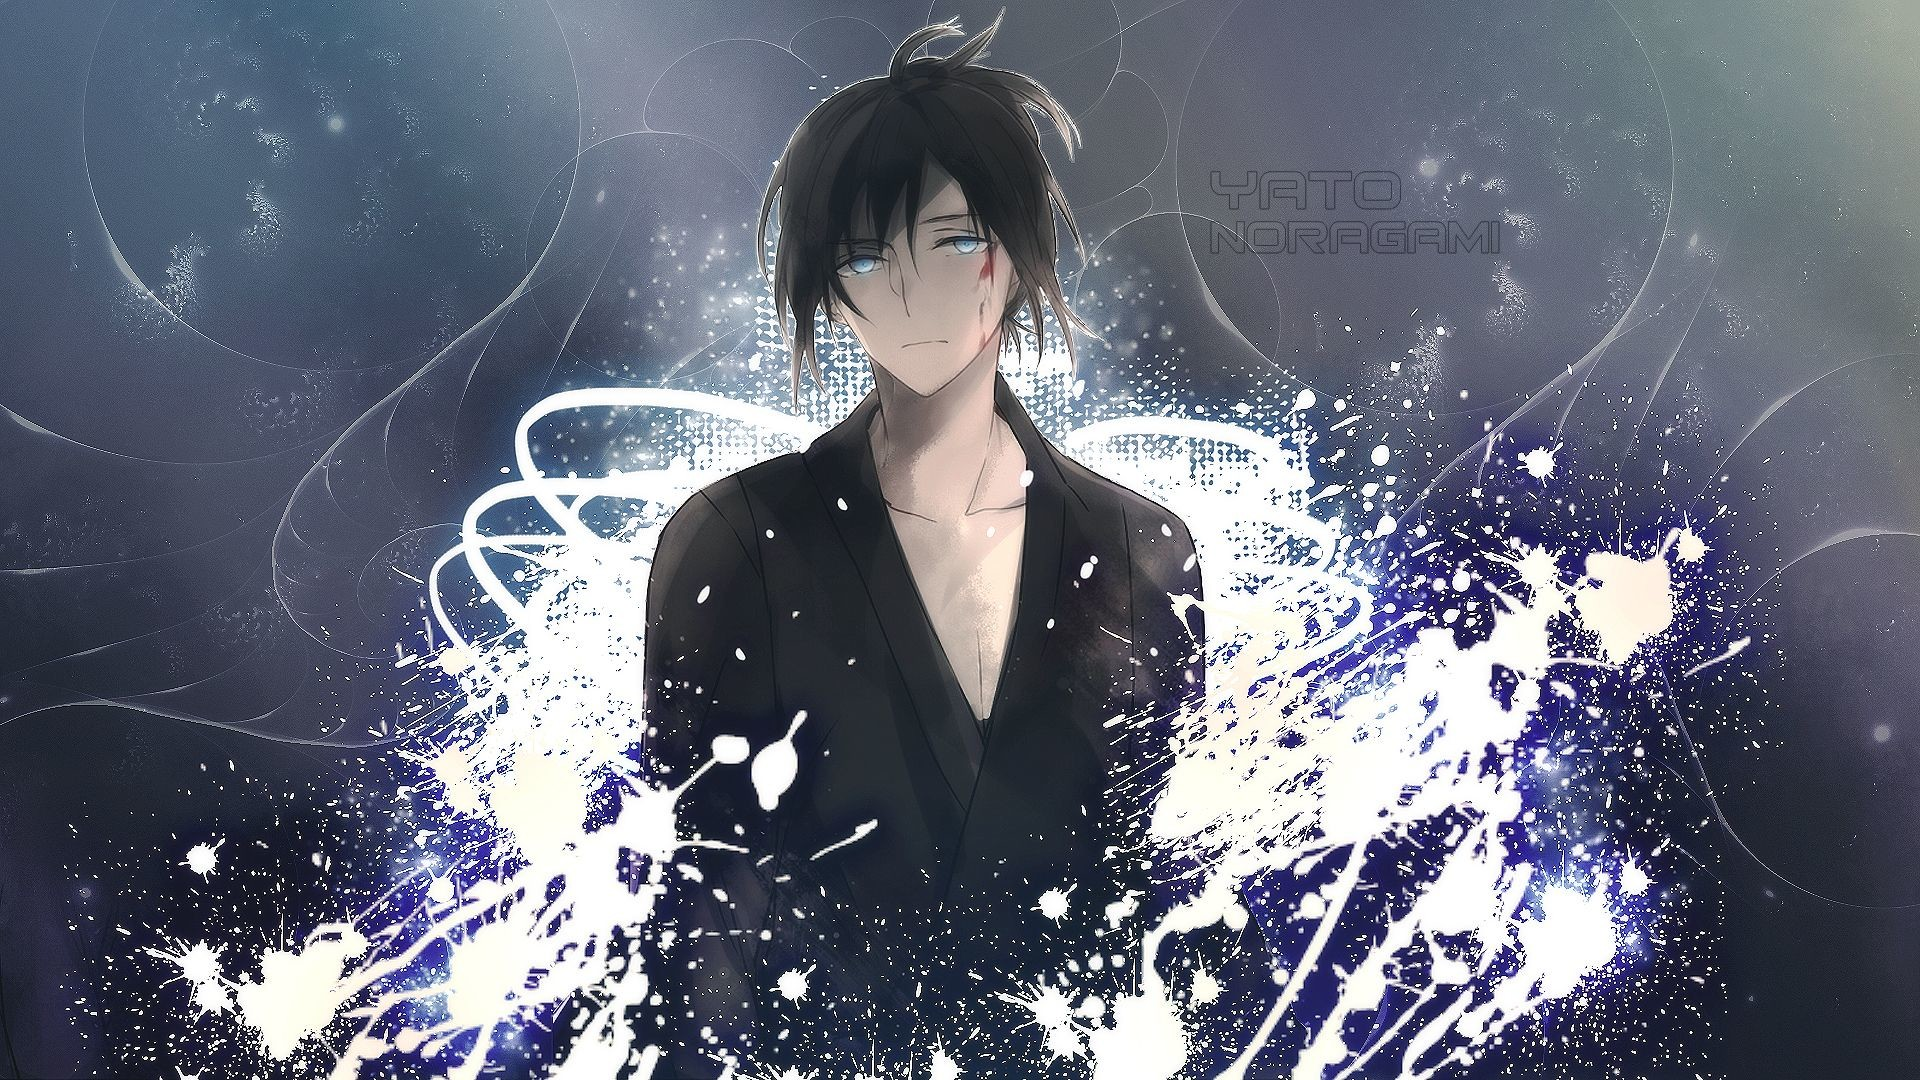 1920x1080 Wallpaper: Noragami Wallpaper 1920x1080 (82+ Images